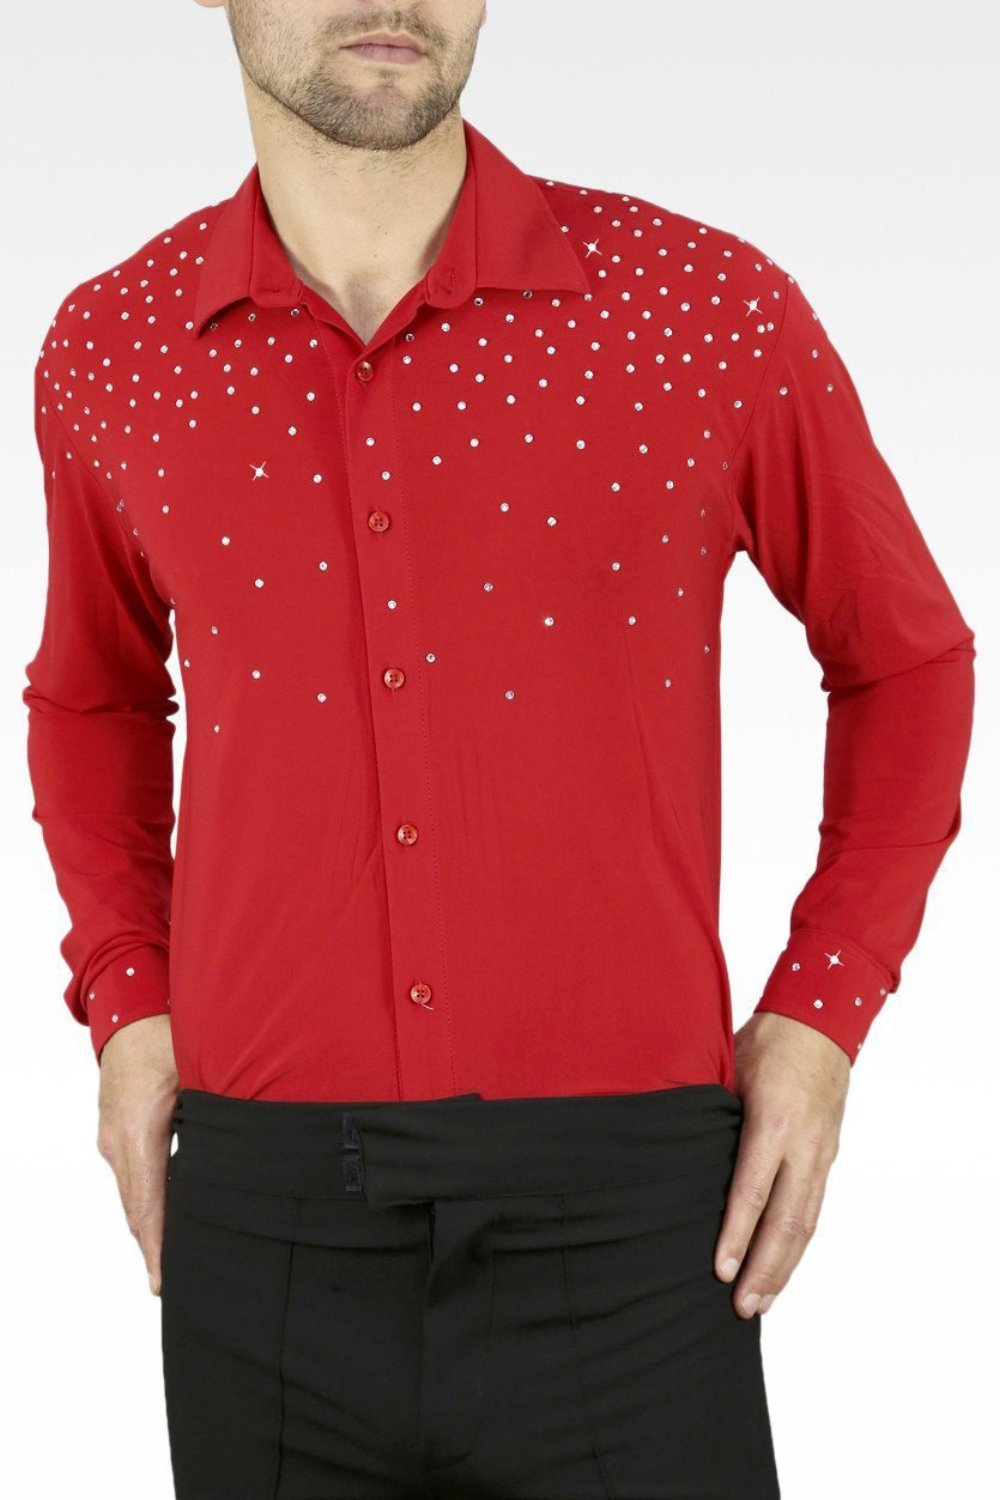 mens latin and ballroom dance shirt uk